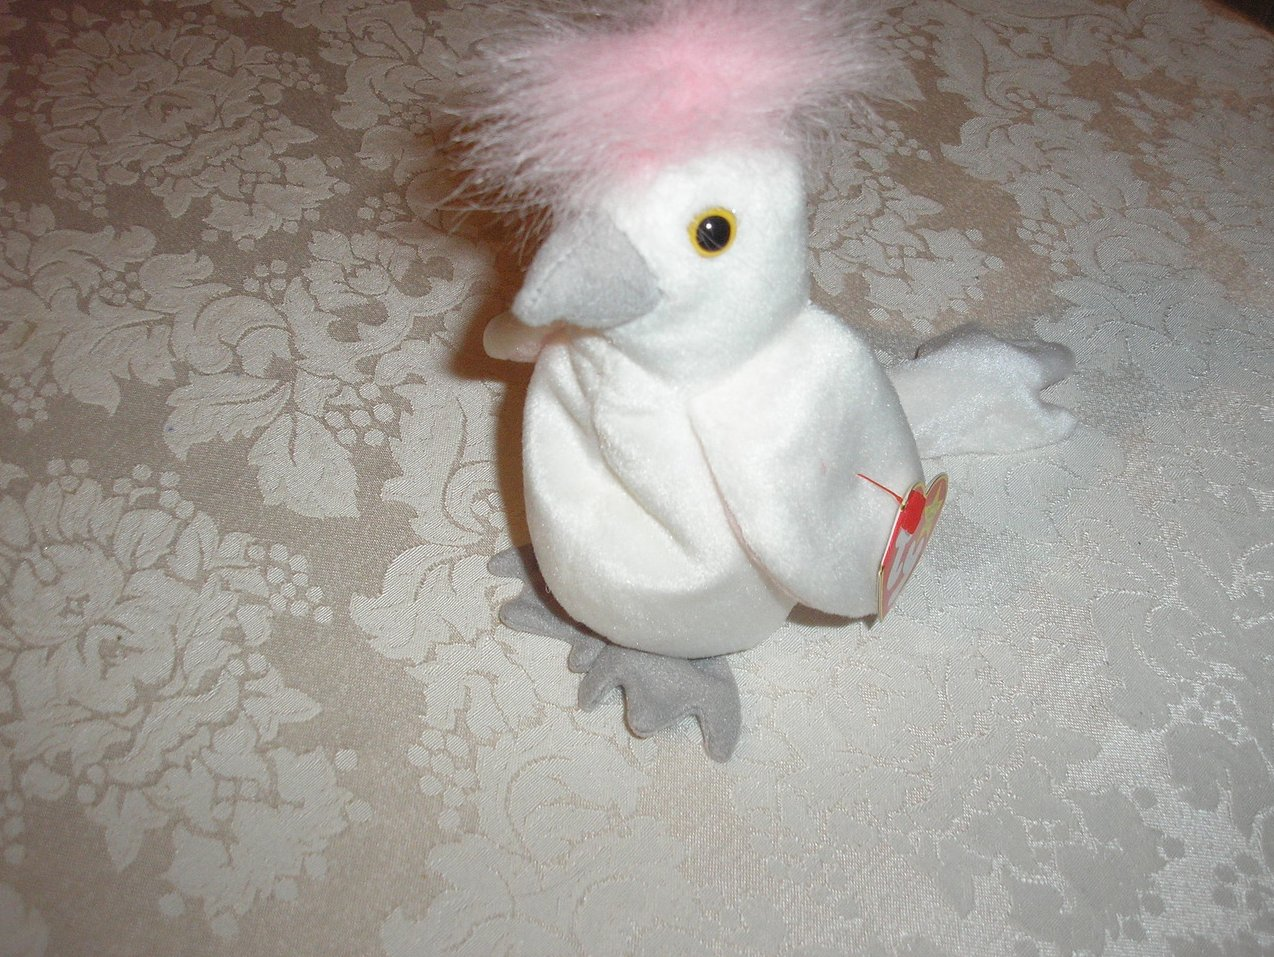 Ty Original Beanie Baby KuKu Cockatoo January 5, 1997